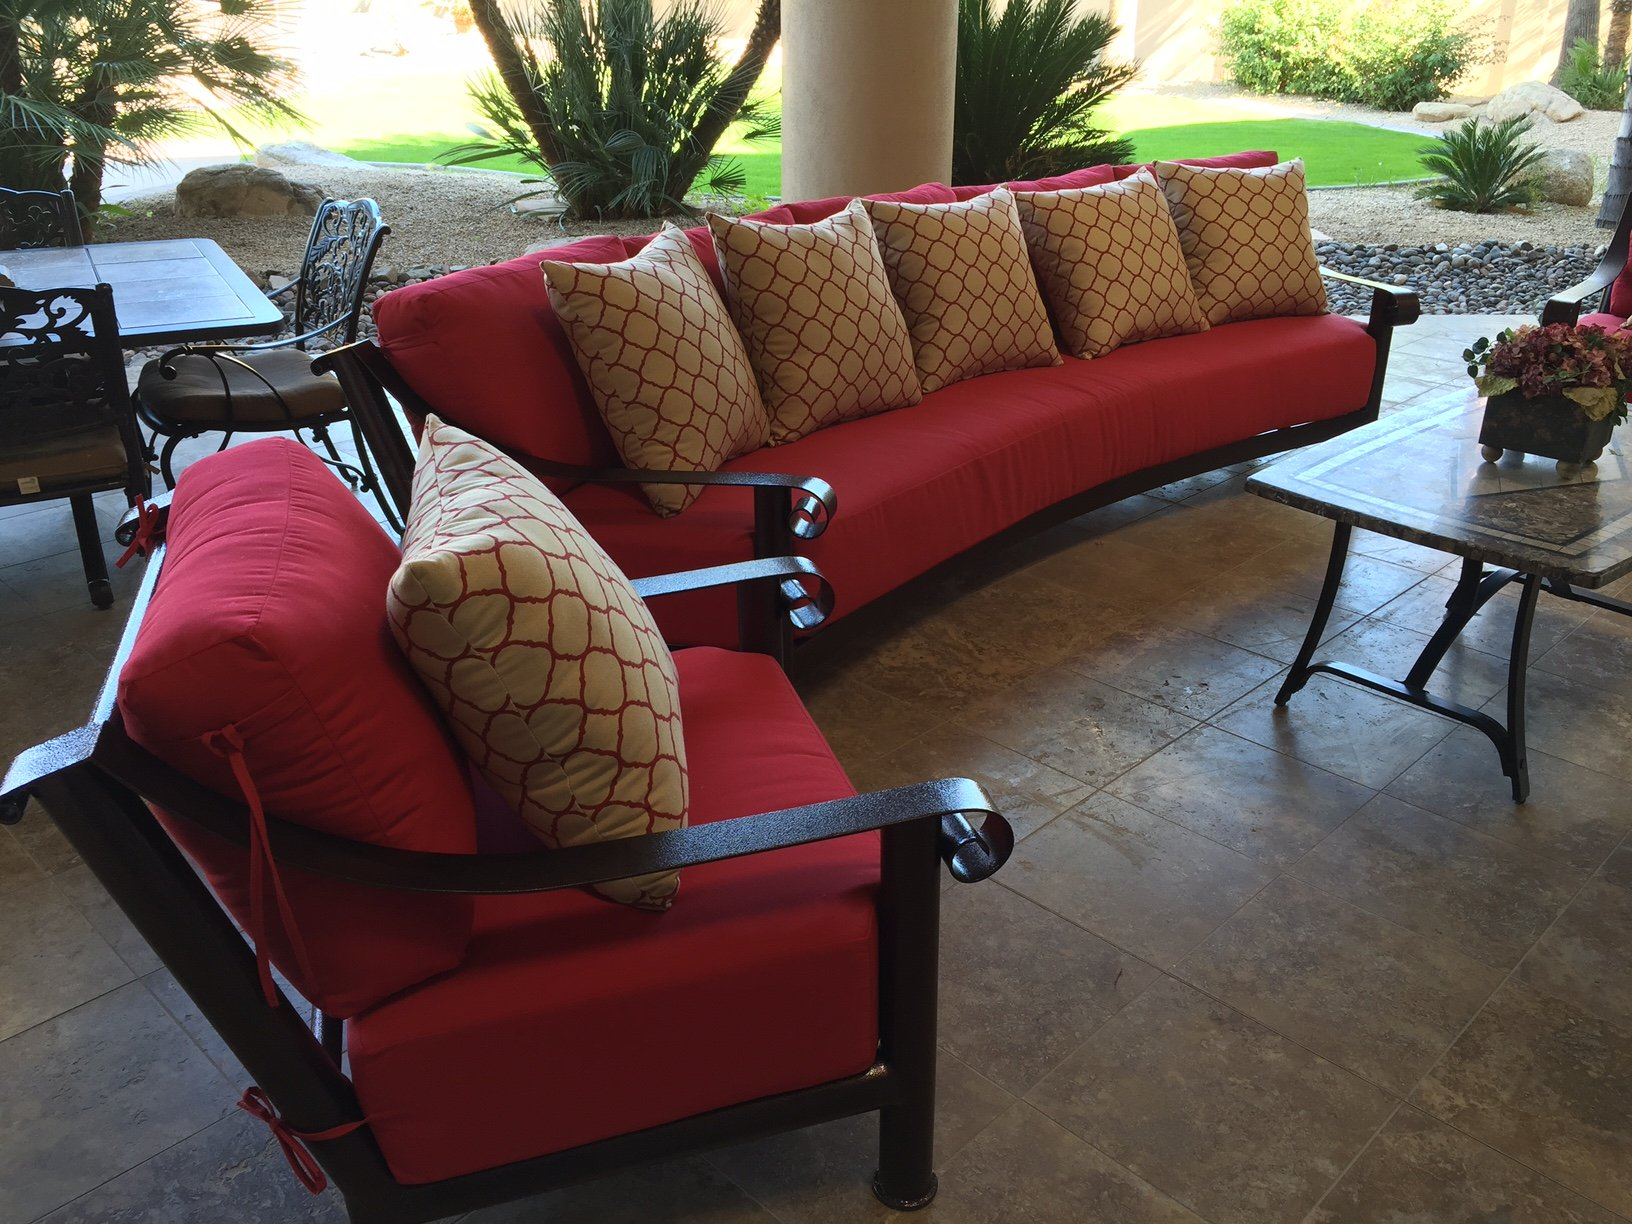 A Wide Selection of Furniture Fabrics Accessories and More & Molino Patio Furniture Photo Gallery | Gilbert AZ